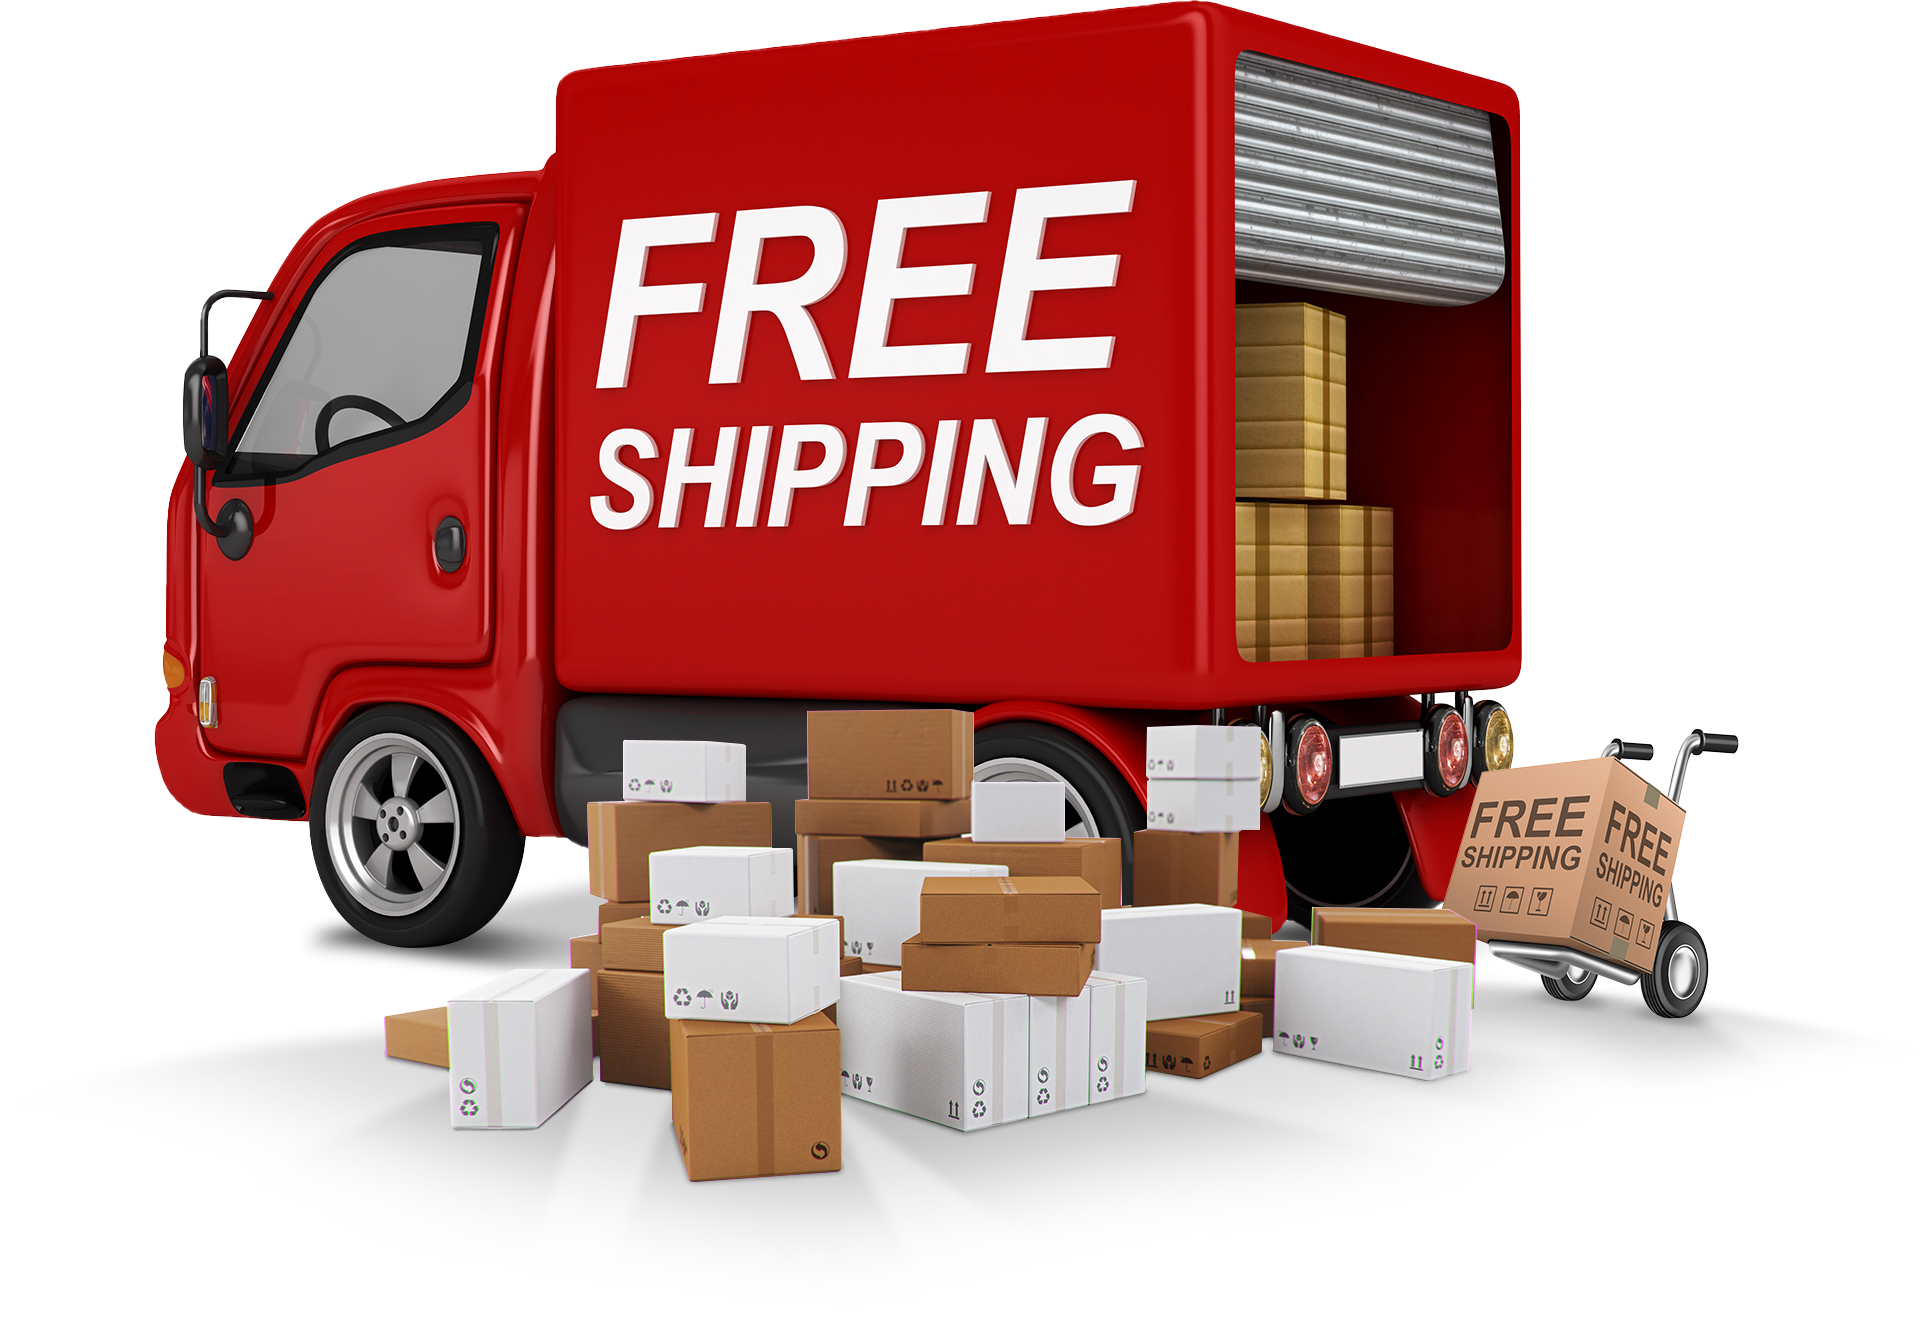 Alpha PC Red Free Shipping Truck